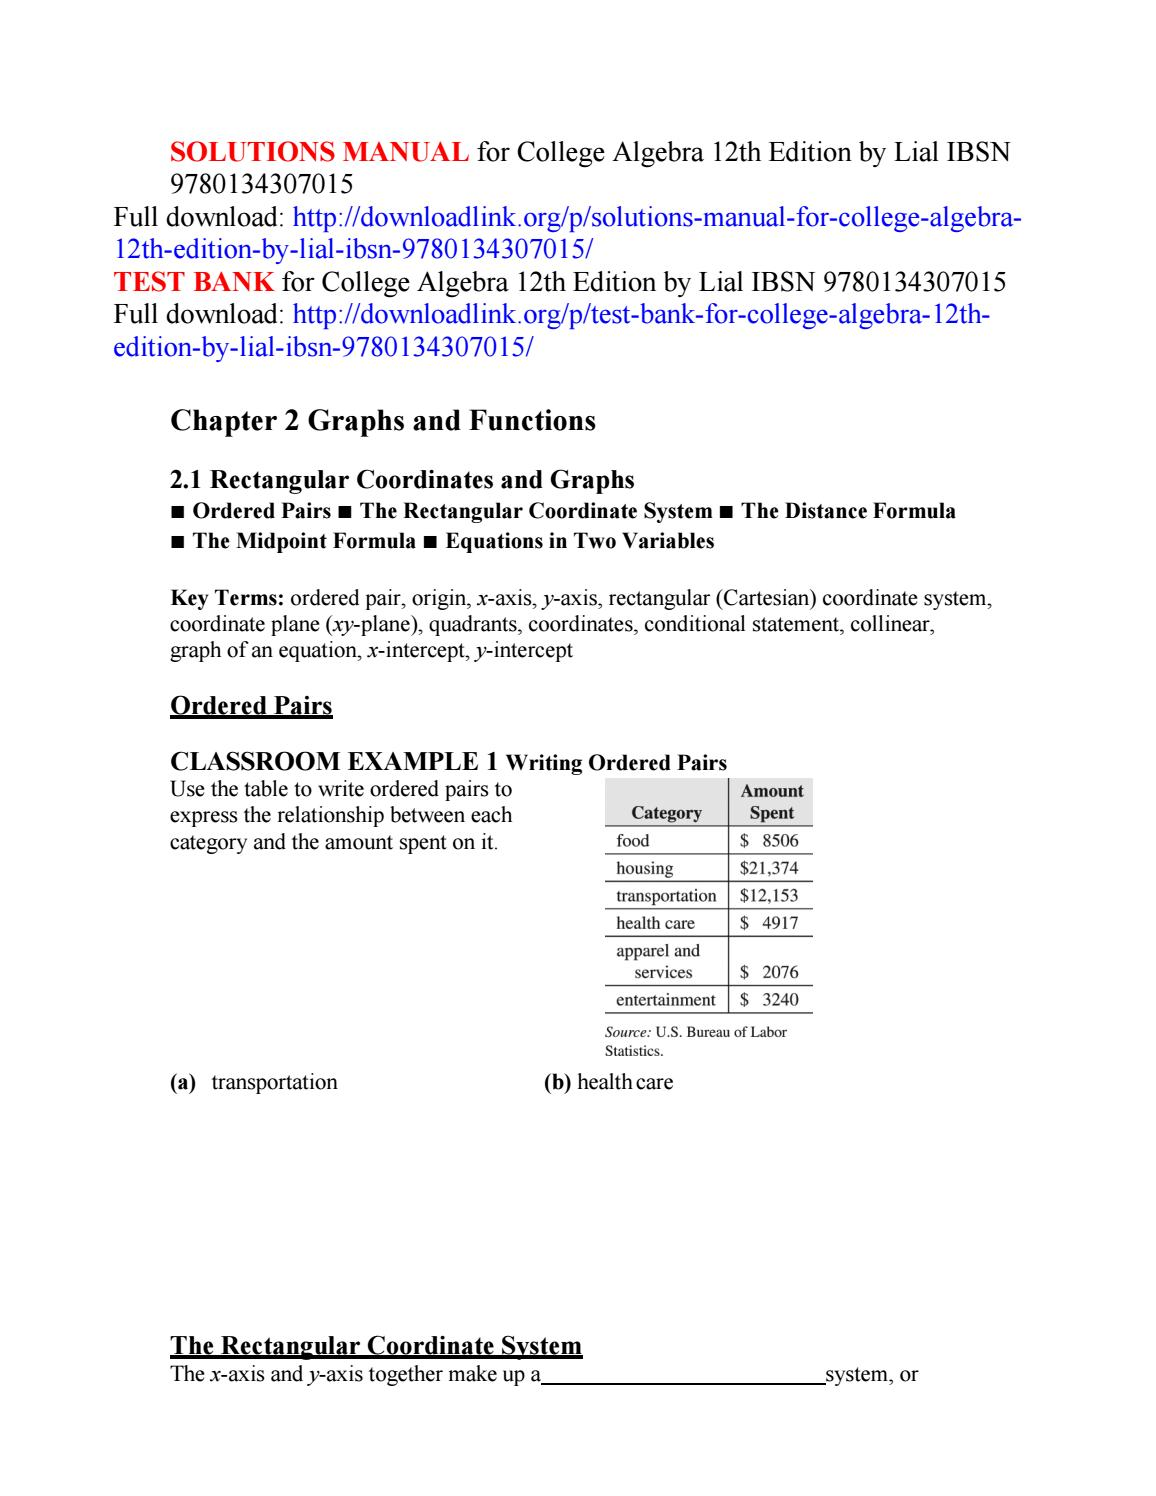 Solutions manual for college algebra 12th edition by lial ibsn  9780134307015 by groutz - issuu